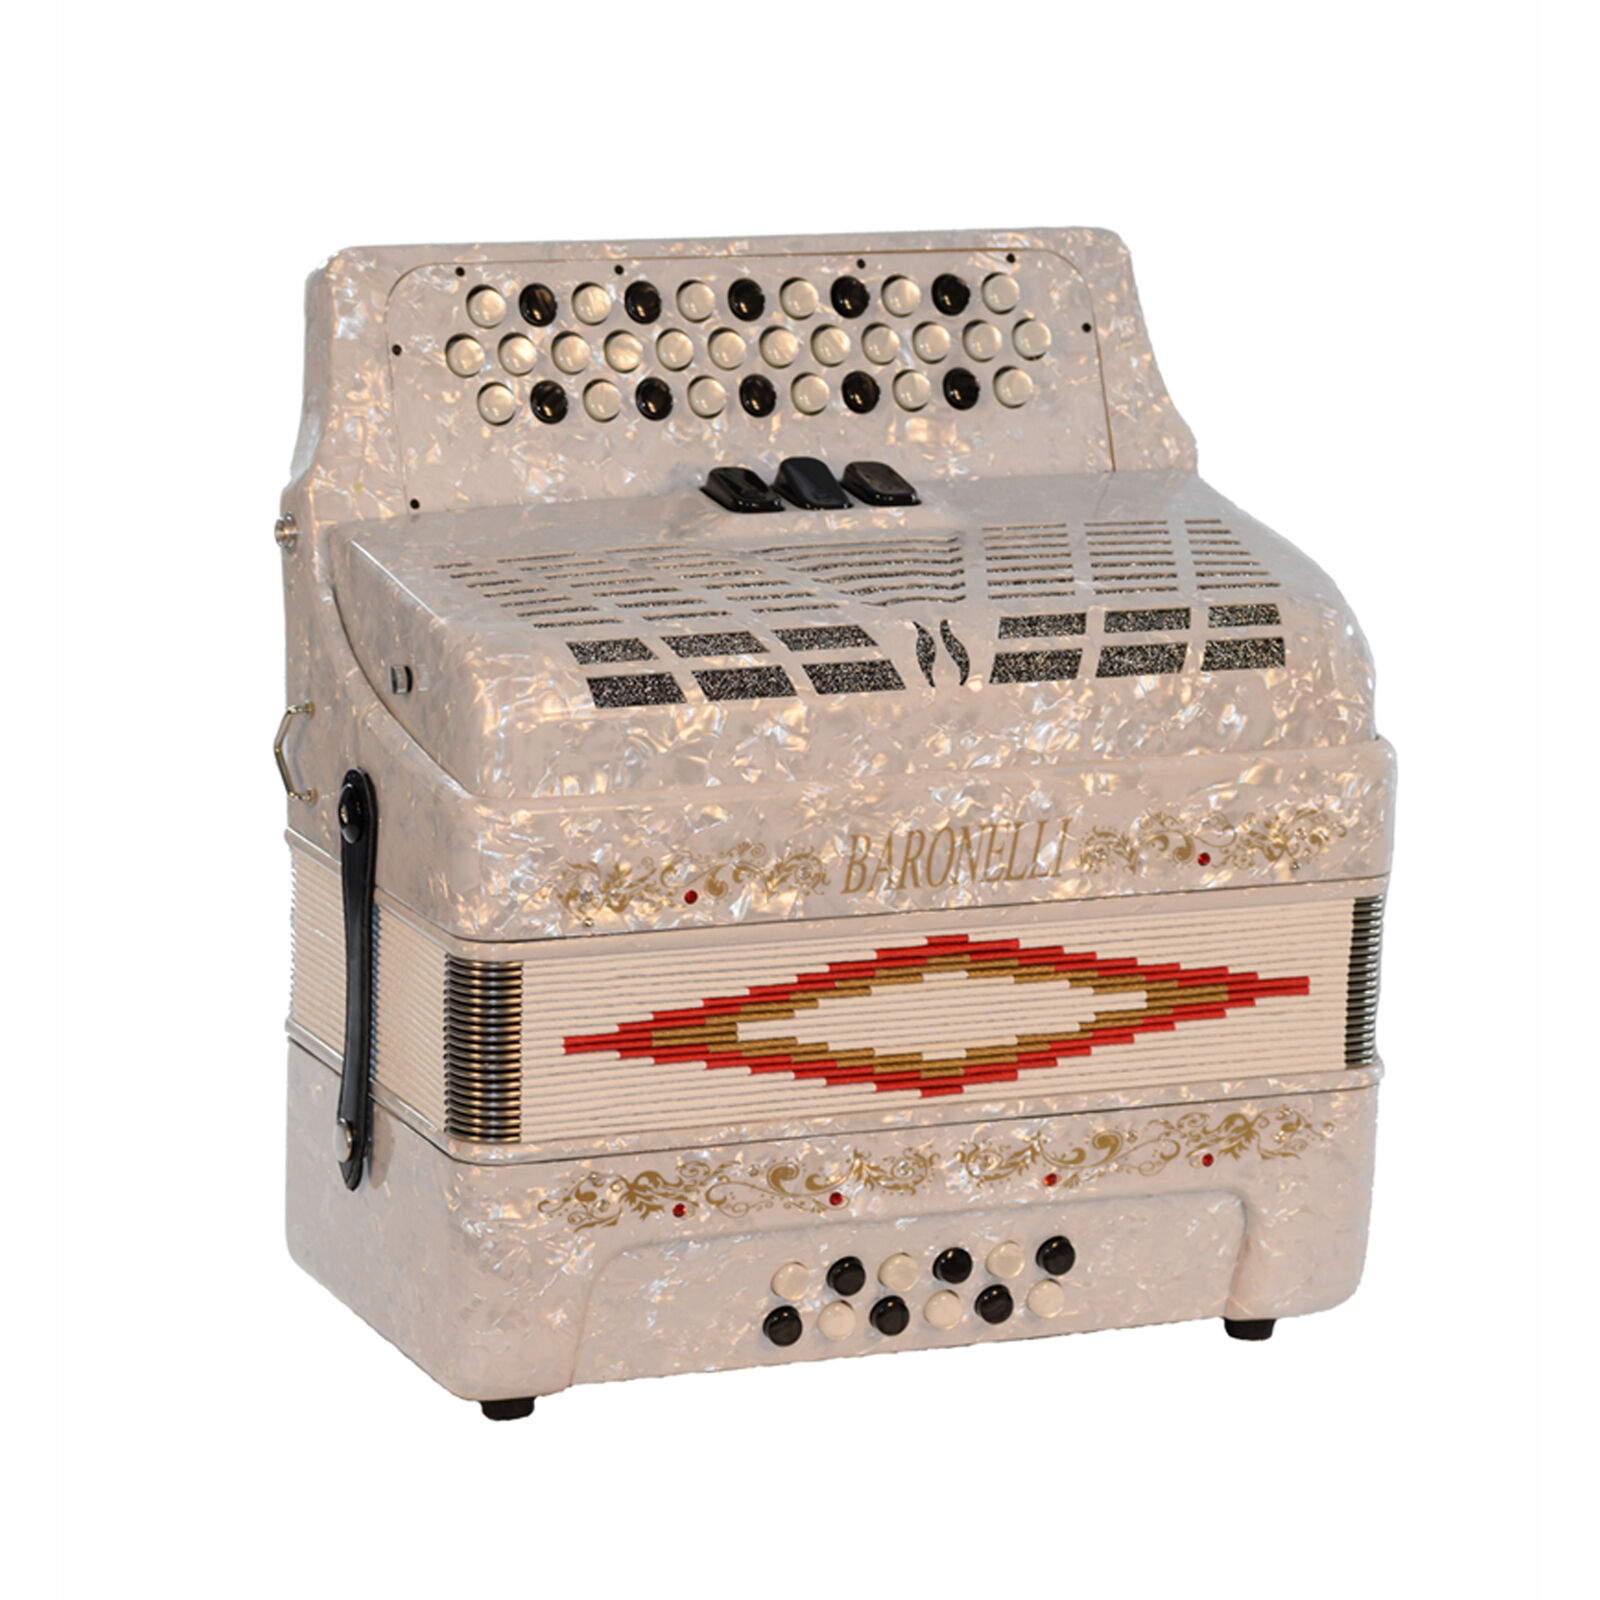 Baronelli 34 Button Accordion 12 Bass, 3 Switch, FBE, With Staps And Case, Weiß